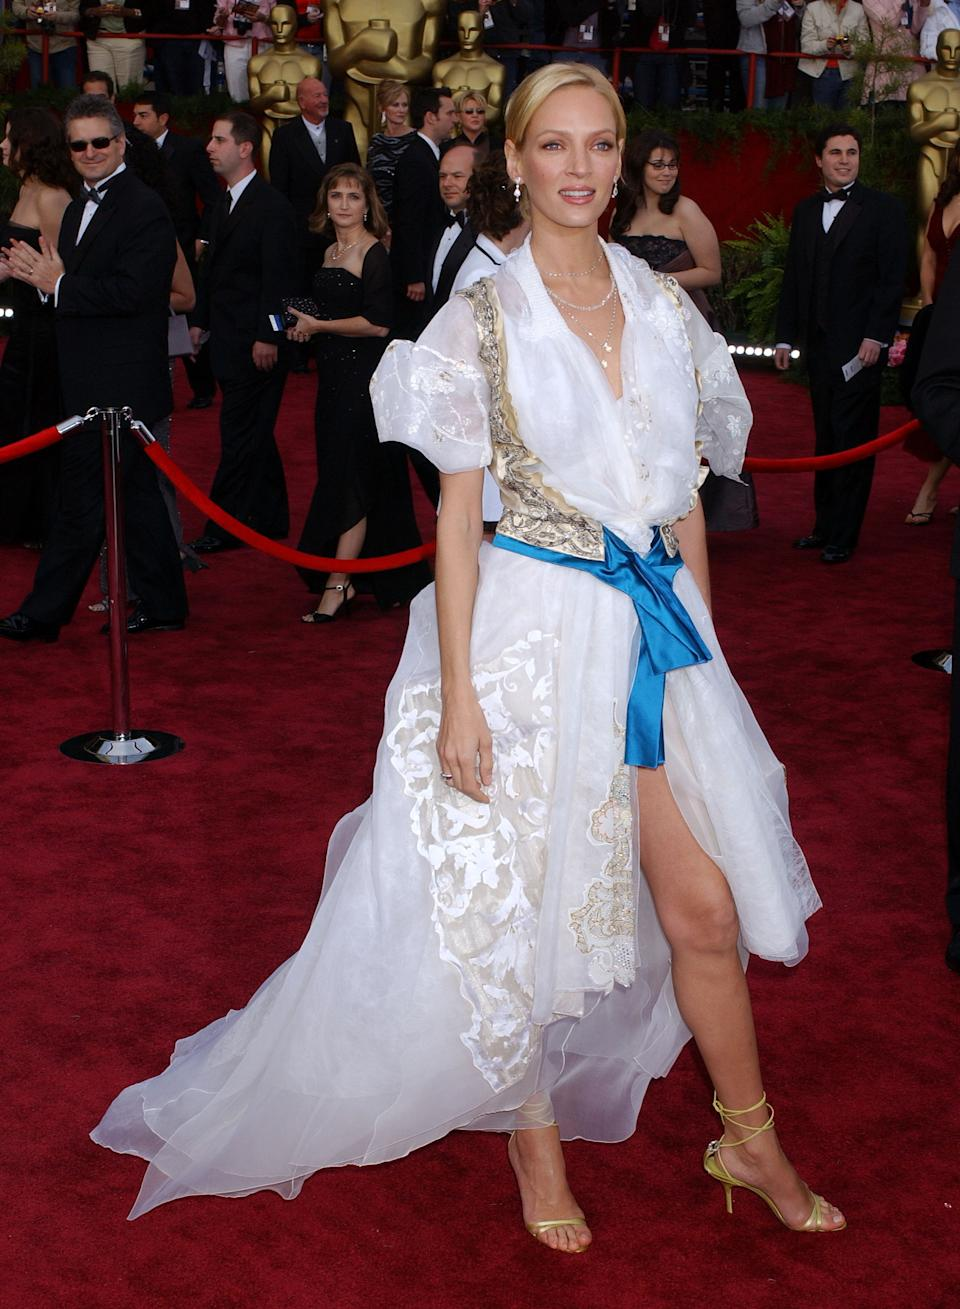 """<p>Although a statuesque star like Thurman could still shine in a paper bag, the """"Kill Bill"""" star <a href=""""https://metro.co.uk/2013/02/21/oscars-fashion-hall-of-shame-the-top-ten-worst-dressed-ever-3508163/"""" rel=""""nofollow noopener"""" target=""""_blank"""" data-ylk=""""slk:called"""" class=""""link rapid-noclick-resp"""">called</a> wearing the Von Trapp Family singer ensemble to the 2004 Academy Awards her """"most embarrassing experience.""""</p>"""